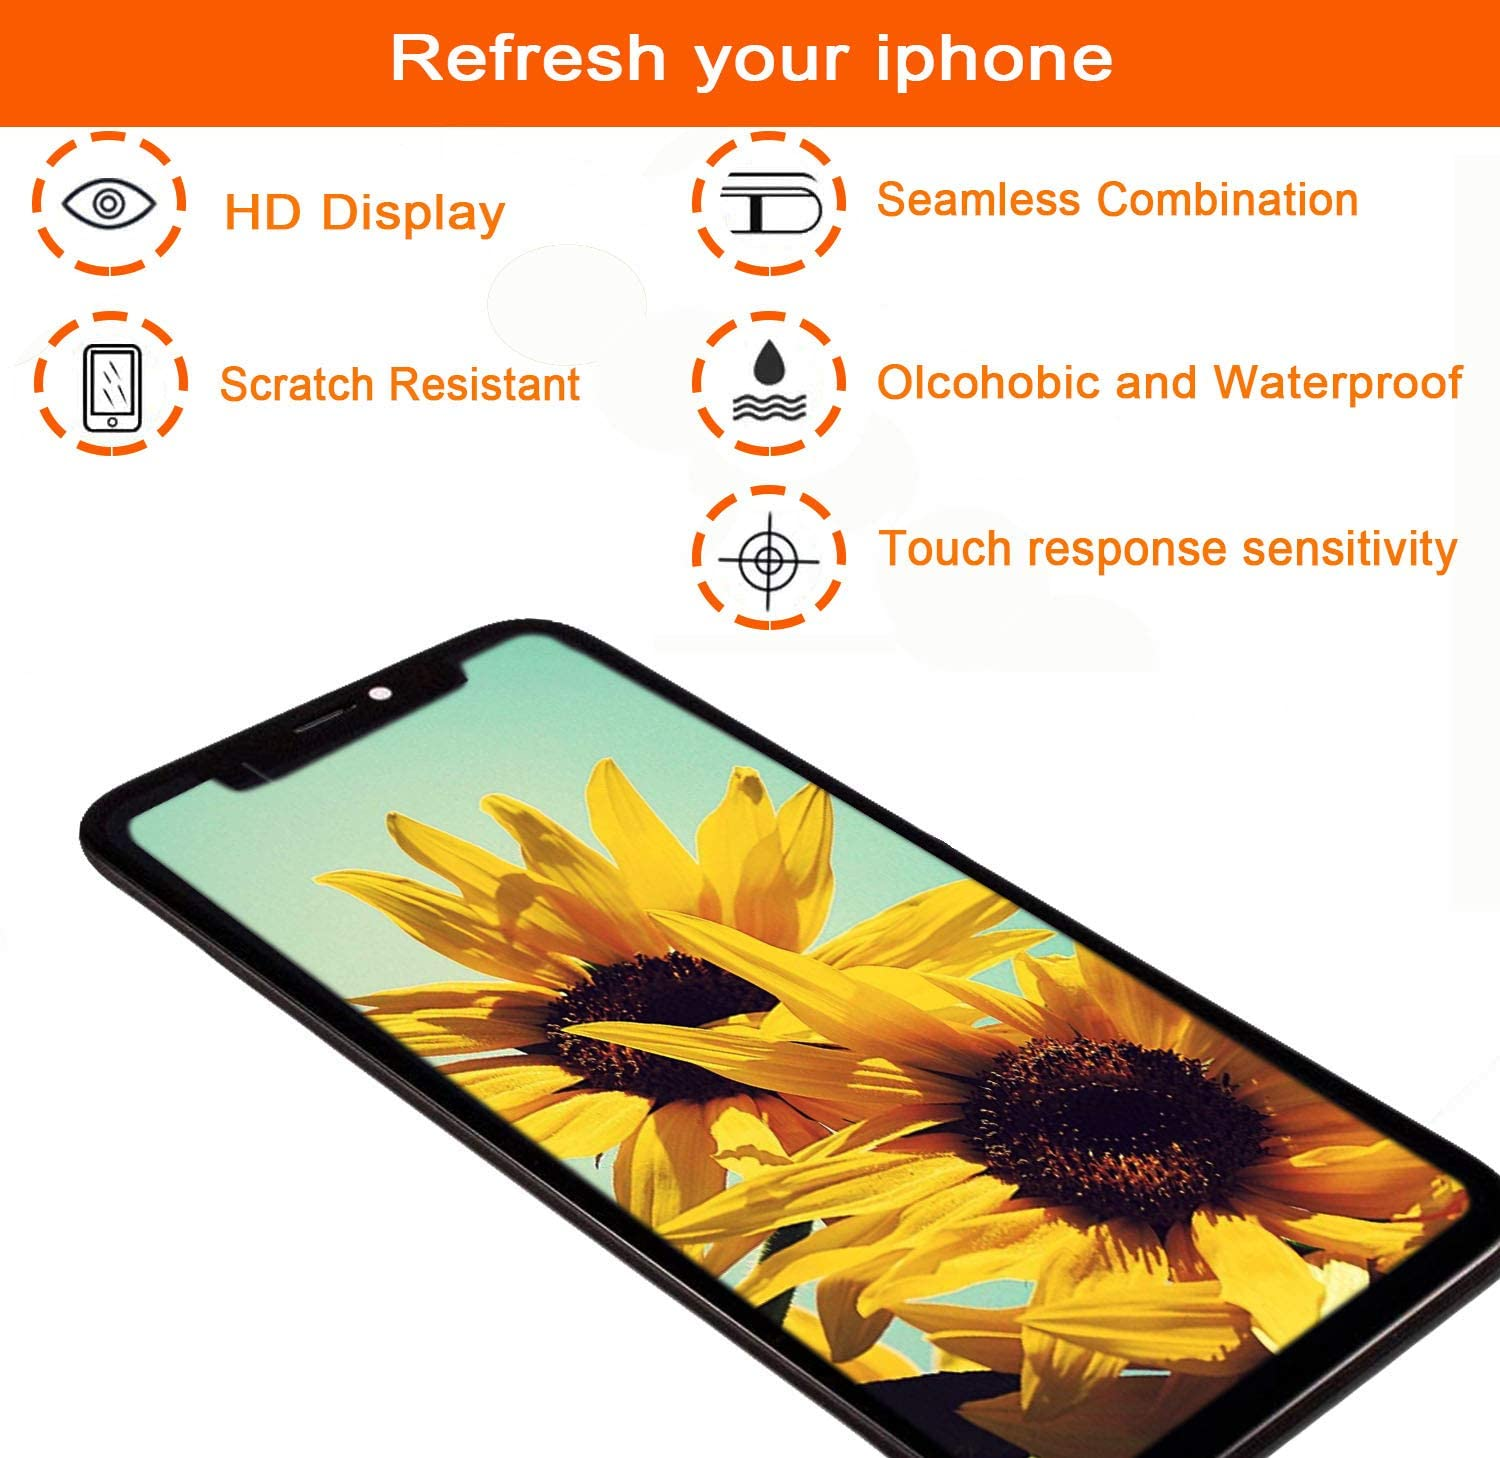 Magic Screen Replacement fits iPhone X 5.8 inch Flexible OLED LCD Screen Display digitizer Assembly Full Complete Front Glass 3D Touch Screen Black